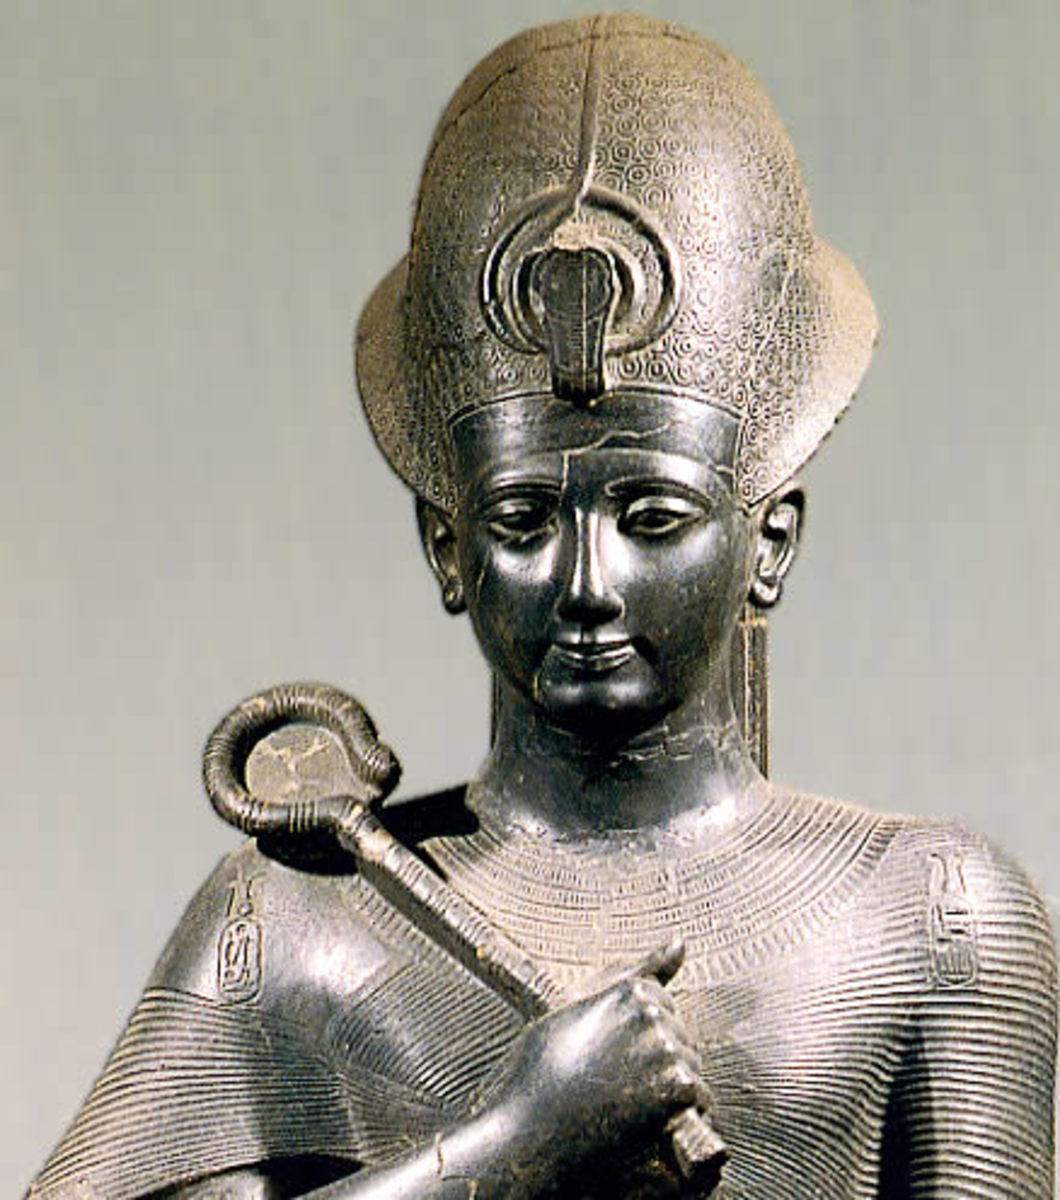 Ramesses II reclaimed Eypt's glory through war and peace treaties. His followers were unable to follow in his footsteps and the 10th Dynasty slipped into disputes and chaos